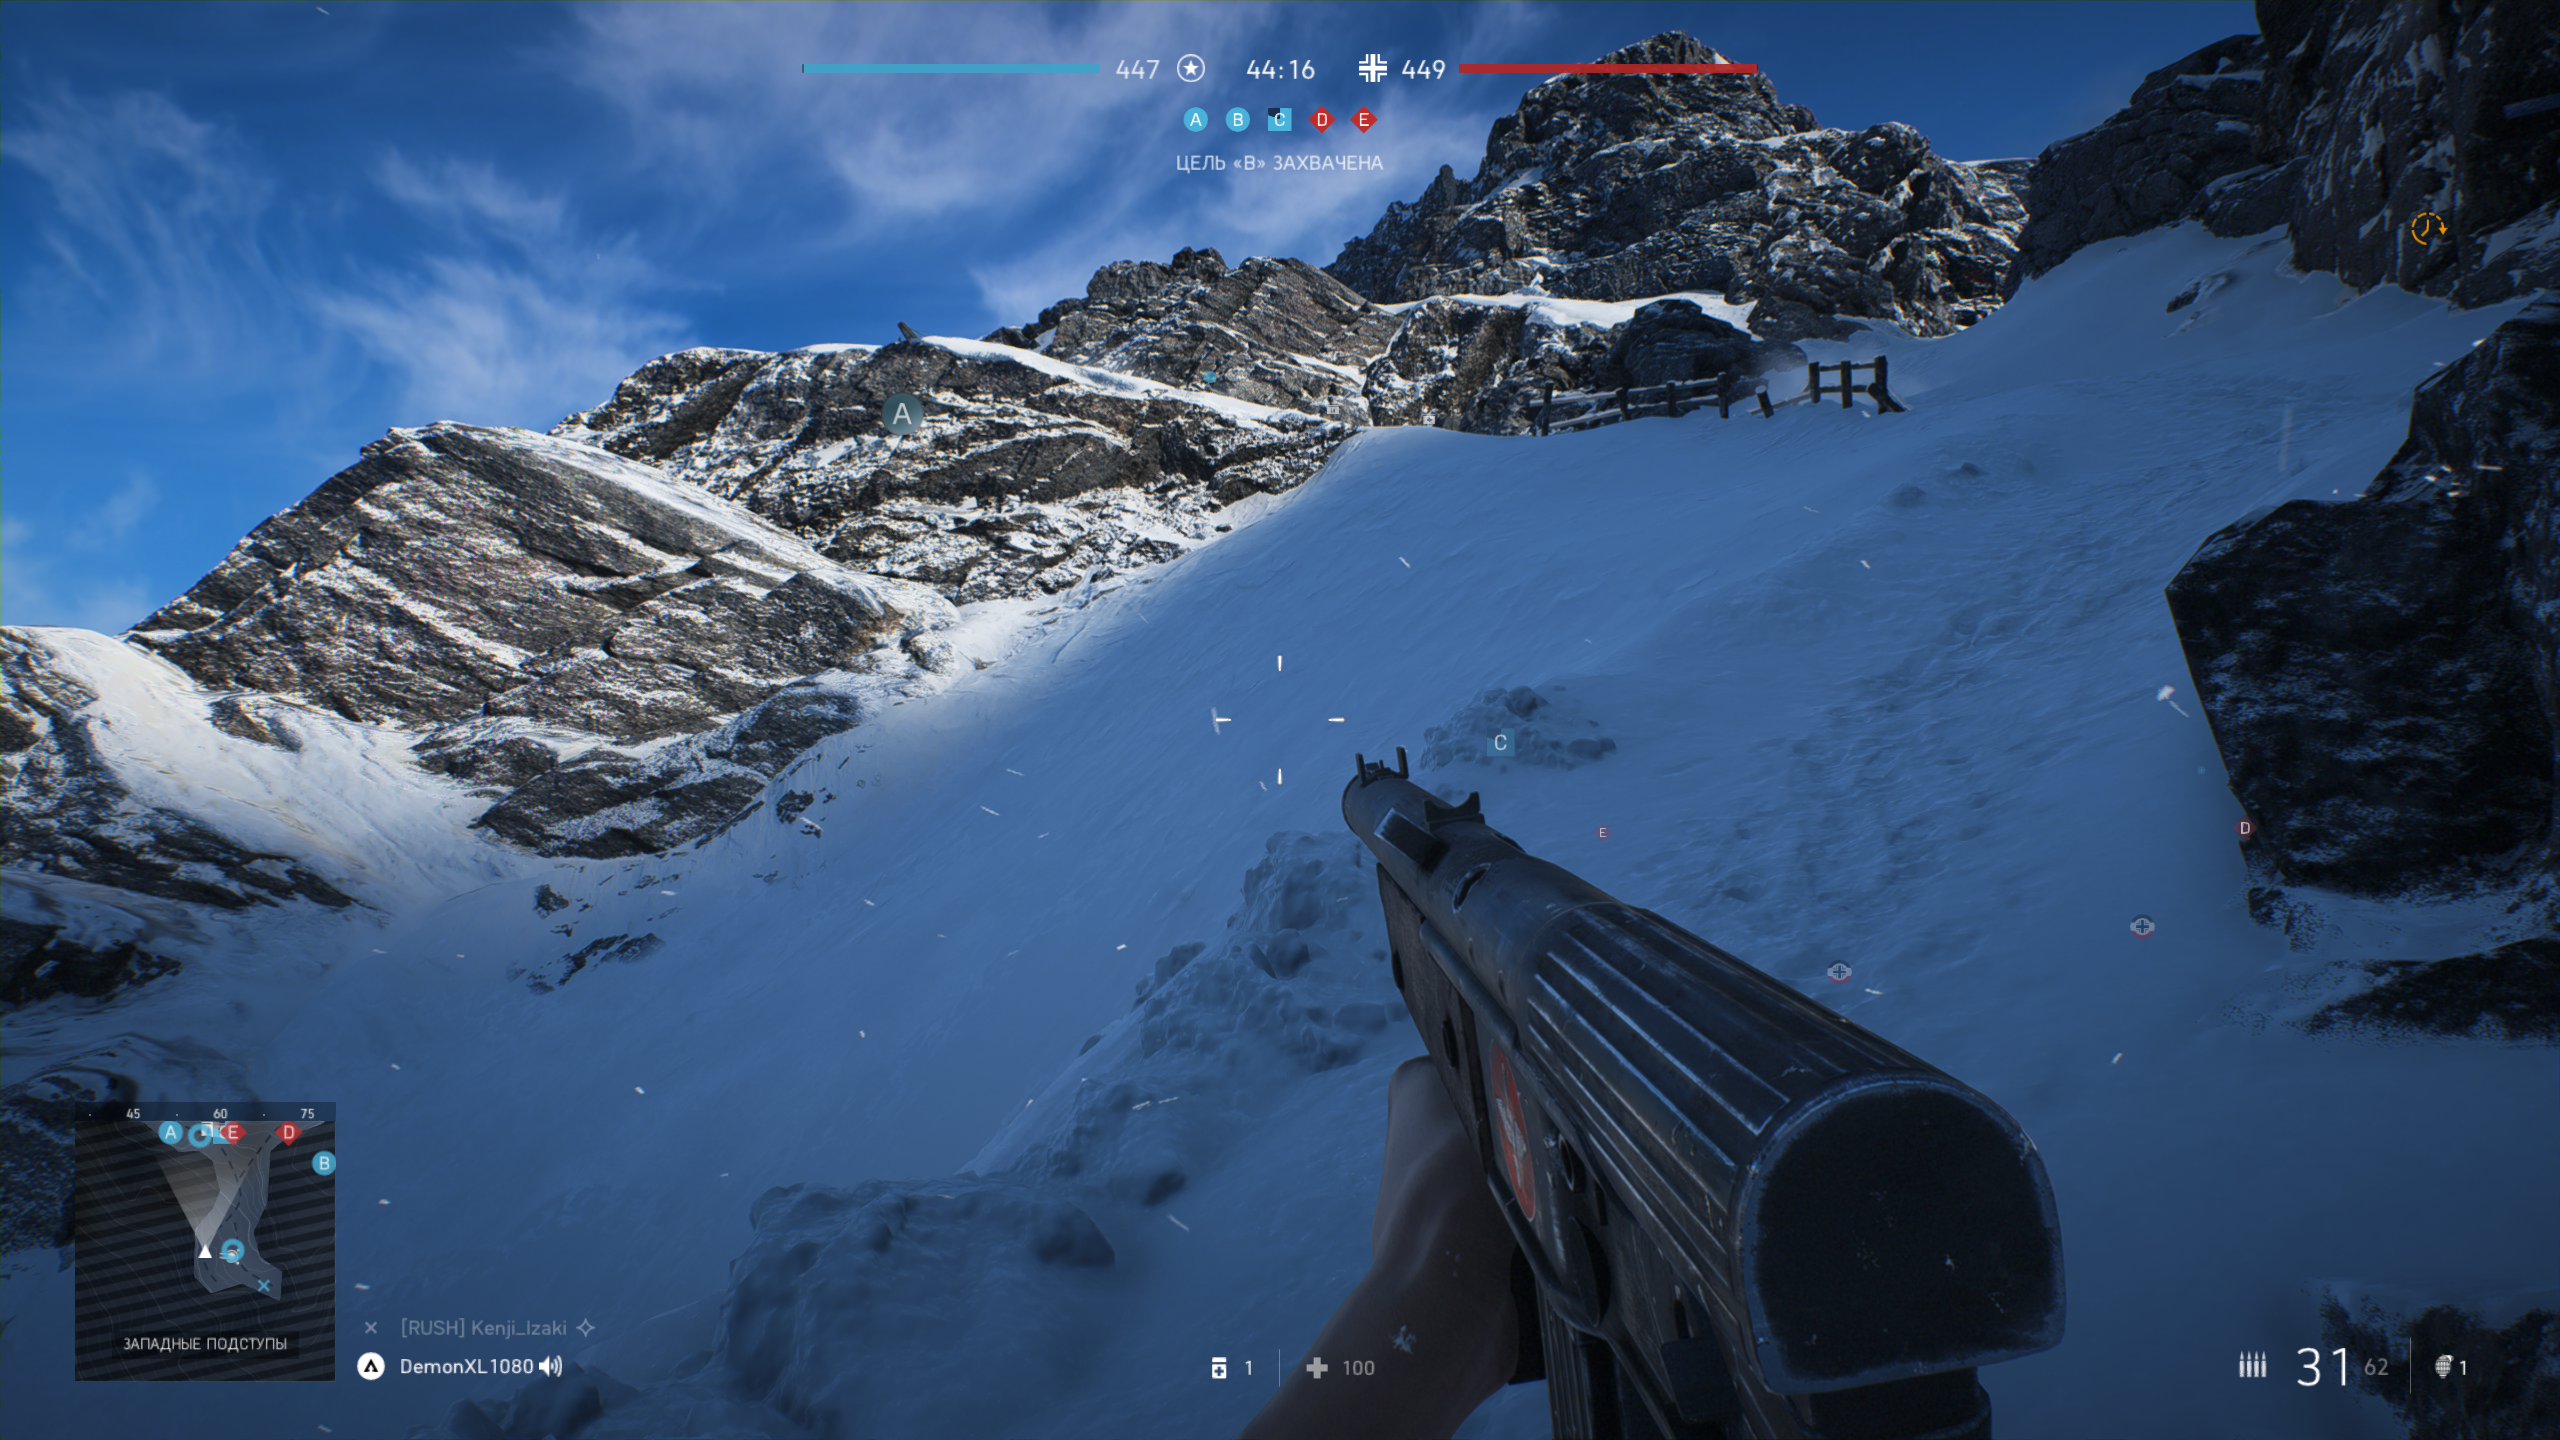 Battlefield V Screenshot 2018.11.08 - 17.05.58.86.png - Battlefield V